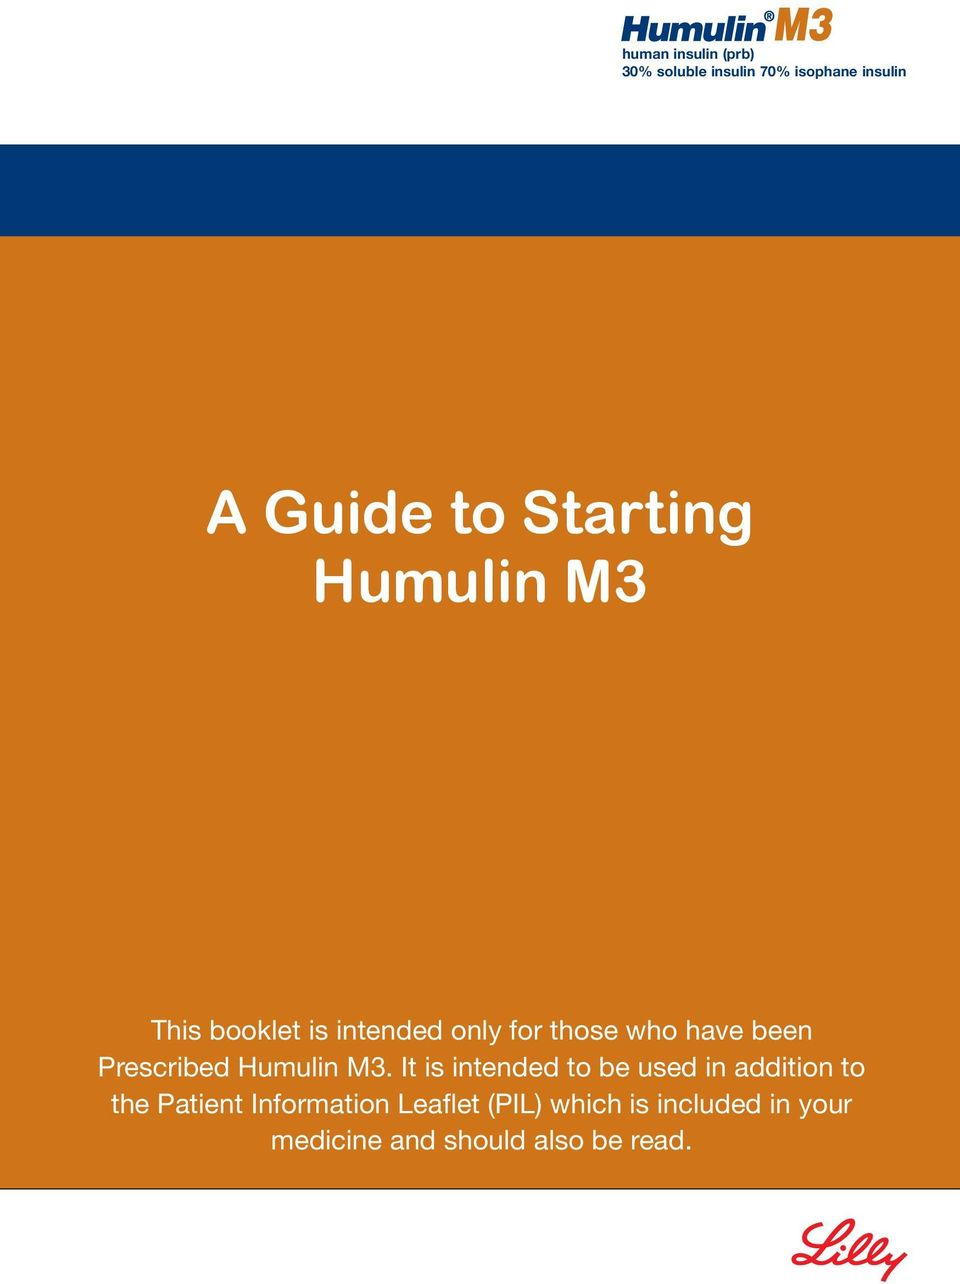 Prescribed Humulin M3.